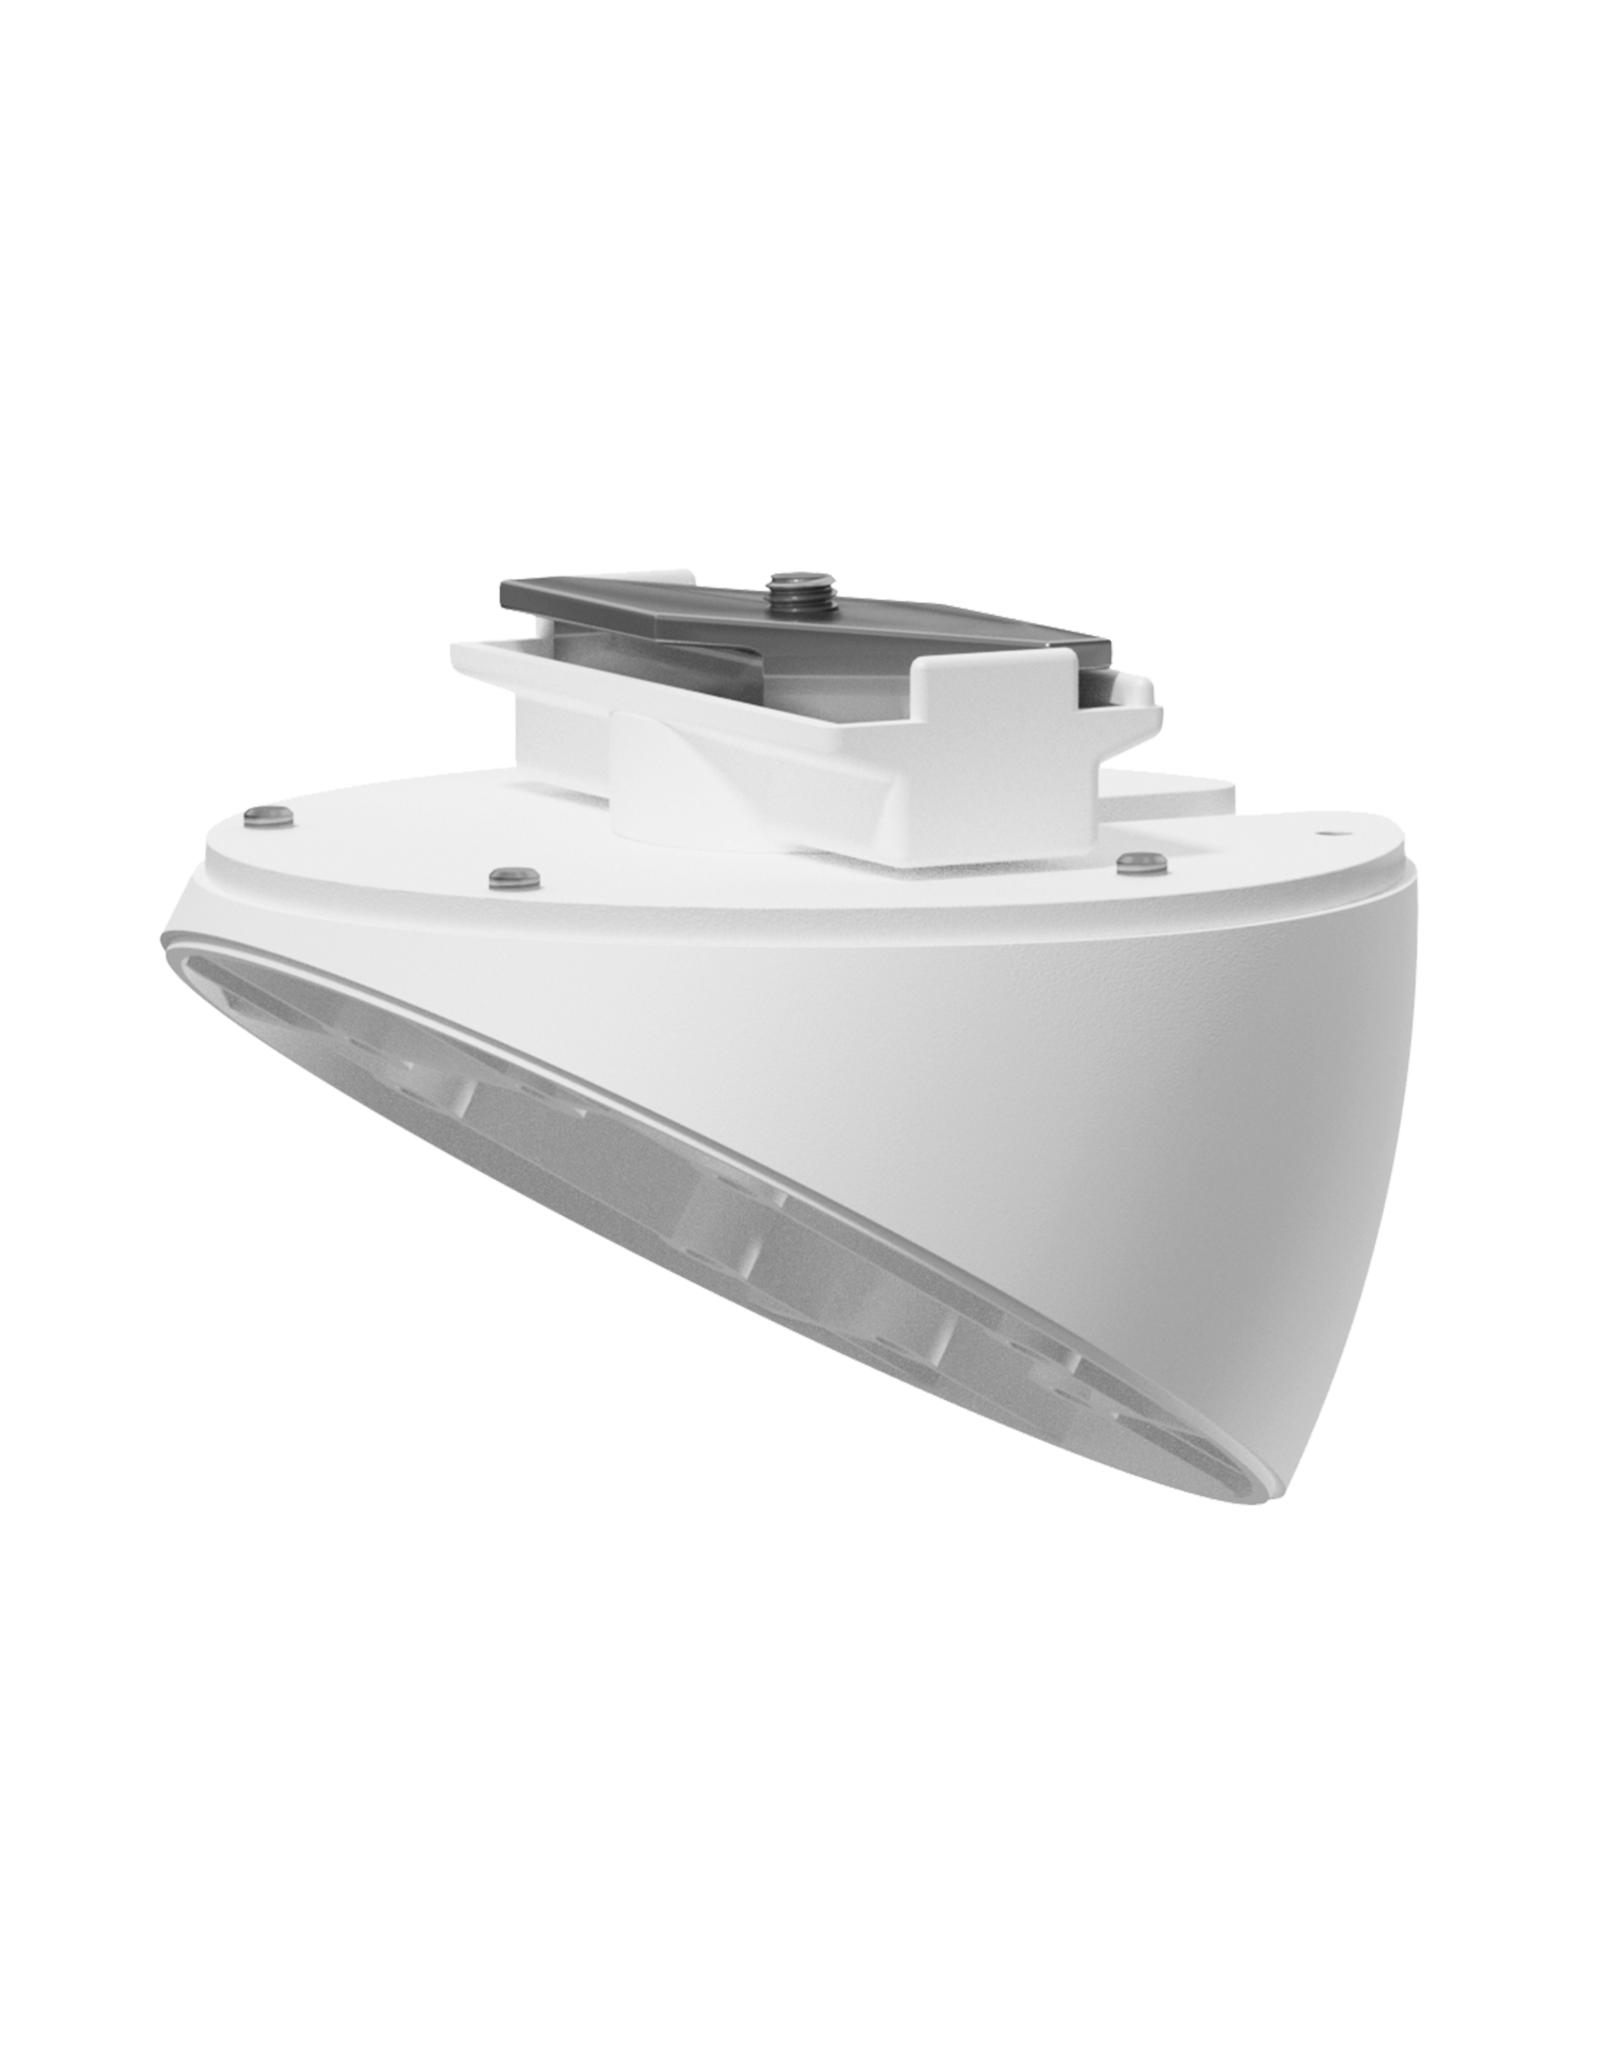 Audac Light track adapter mount for ATEO4 White version